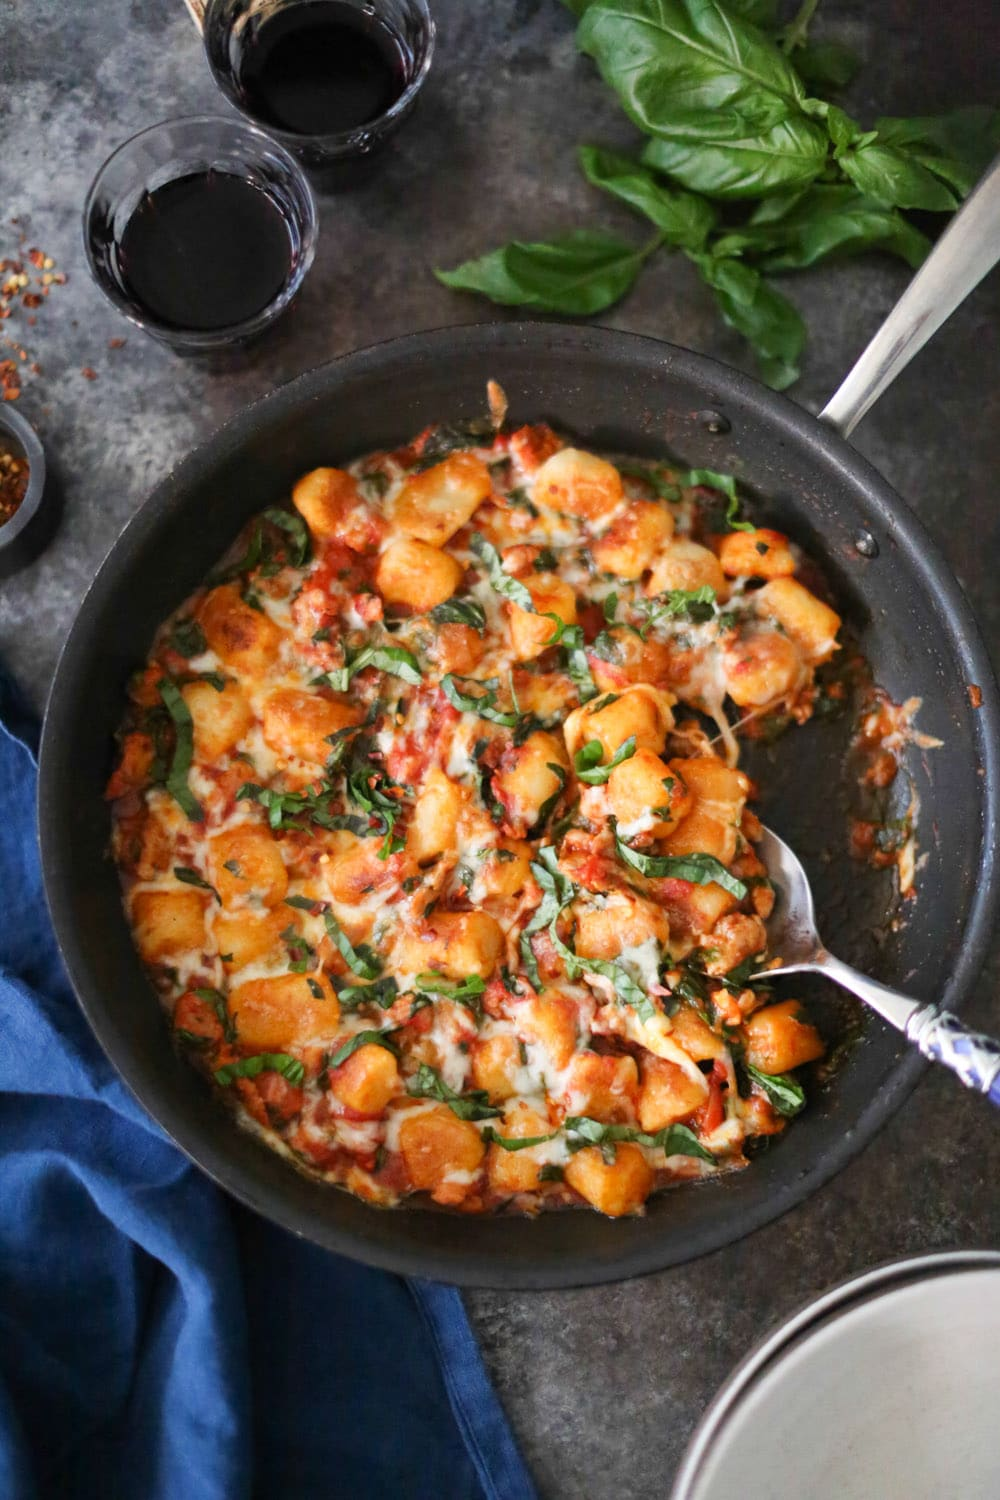 Health Pantry Recipes- Skillet Cauliflower Gnocchi with Sausage and Spinach